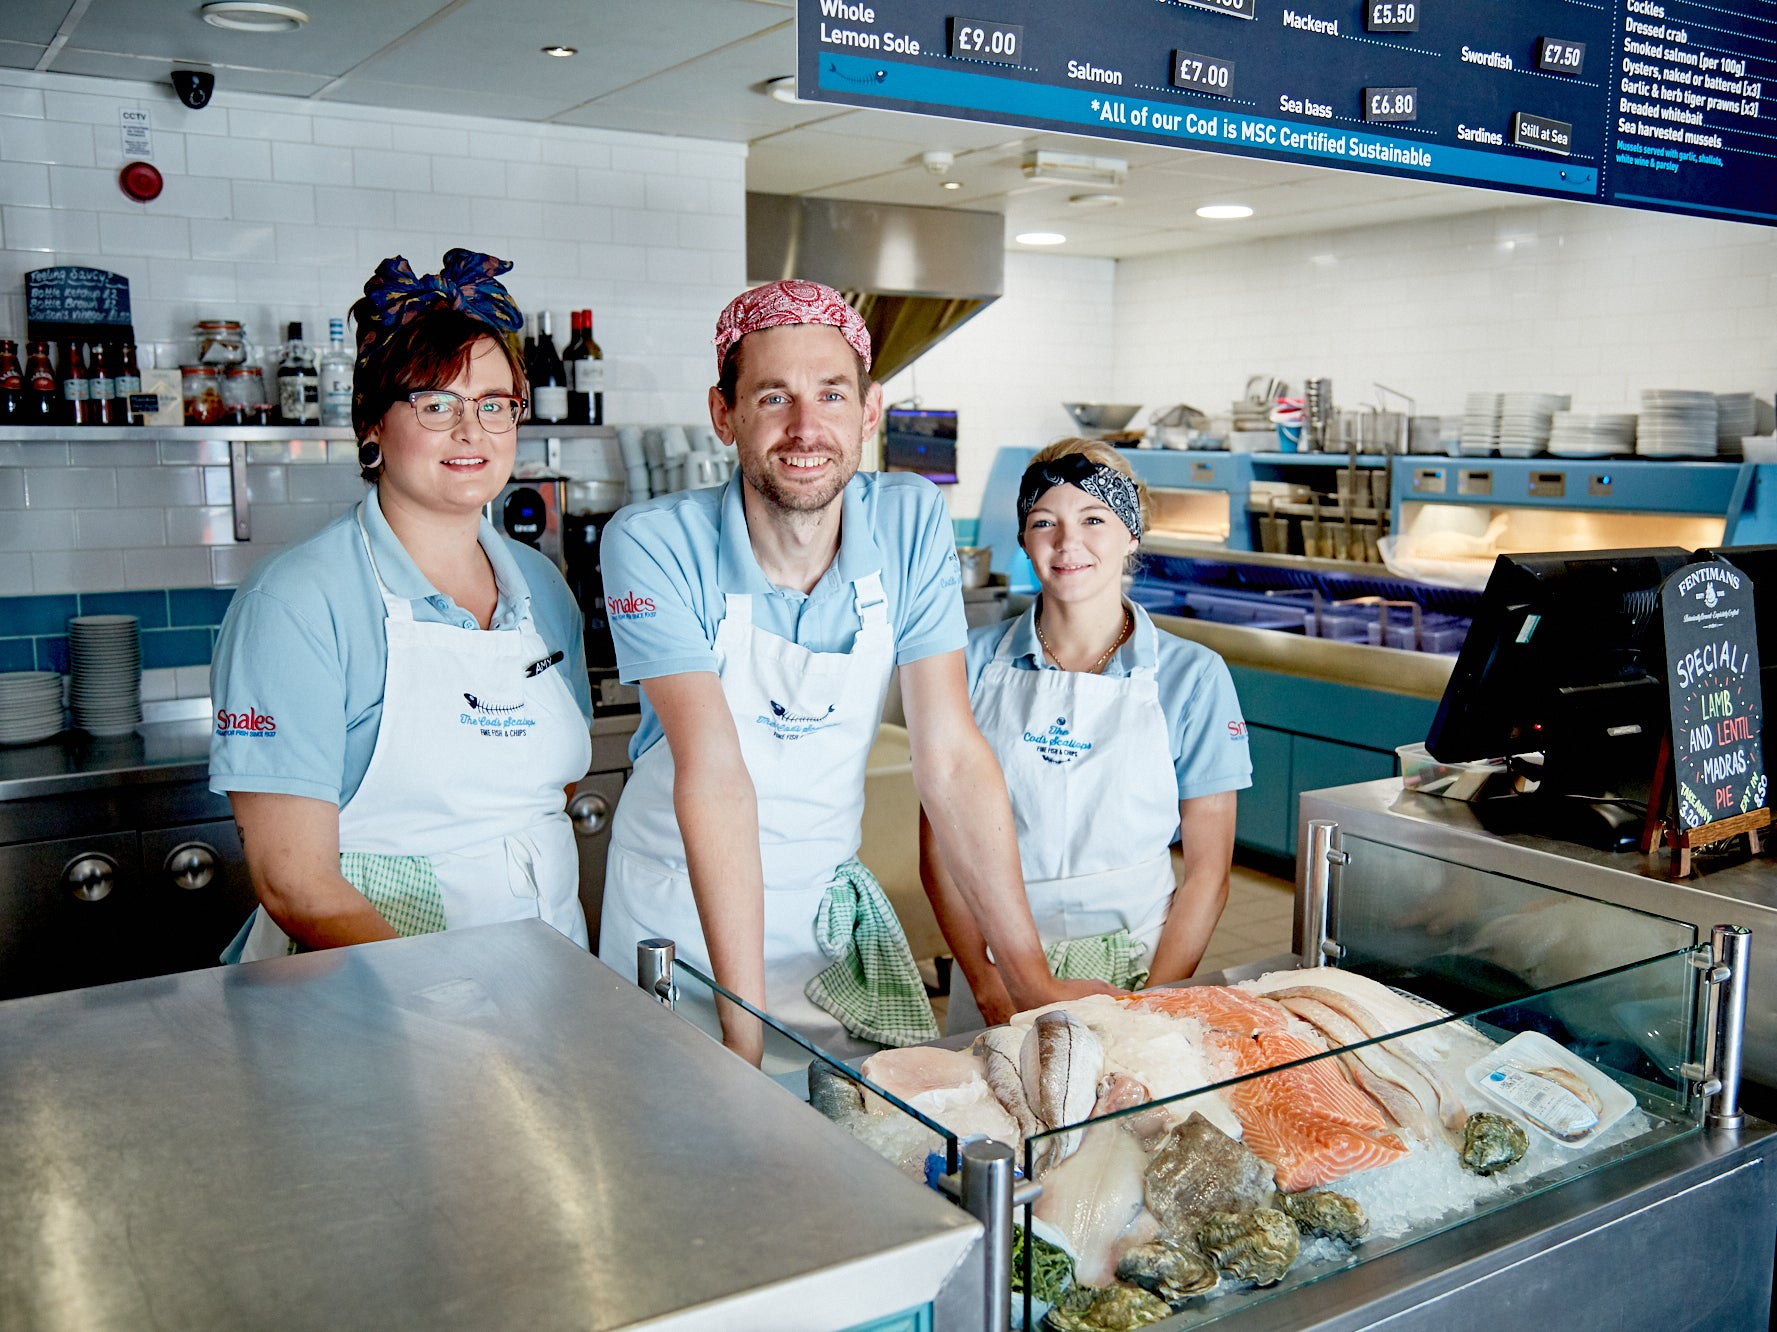 The Cod S Scallops Nottingham Chippy Named Best In Uk Despite Being 80 Miles From Coast The Independent The Independent